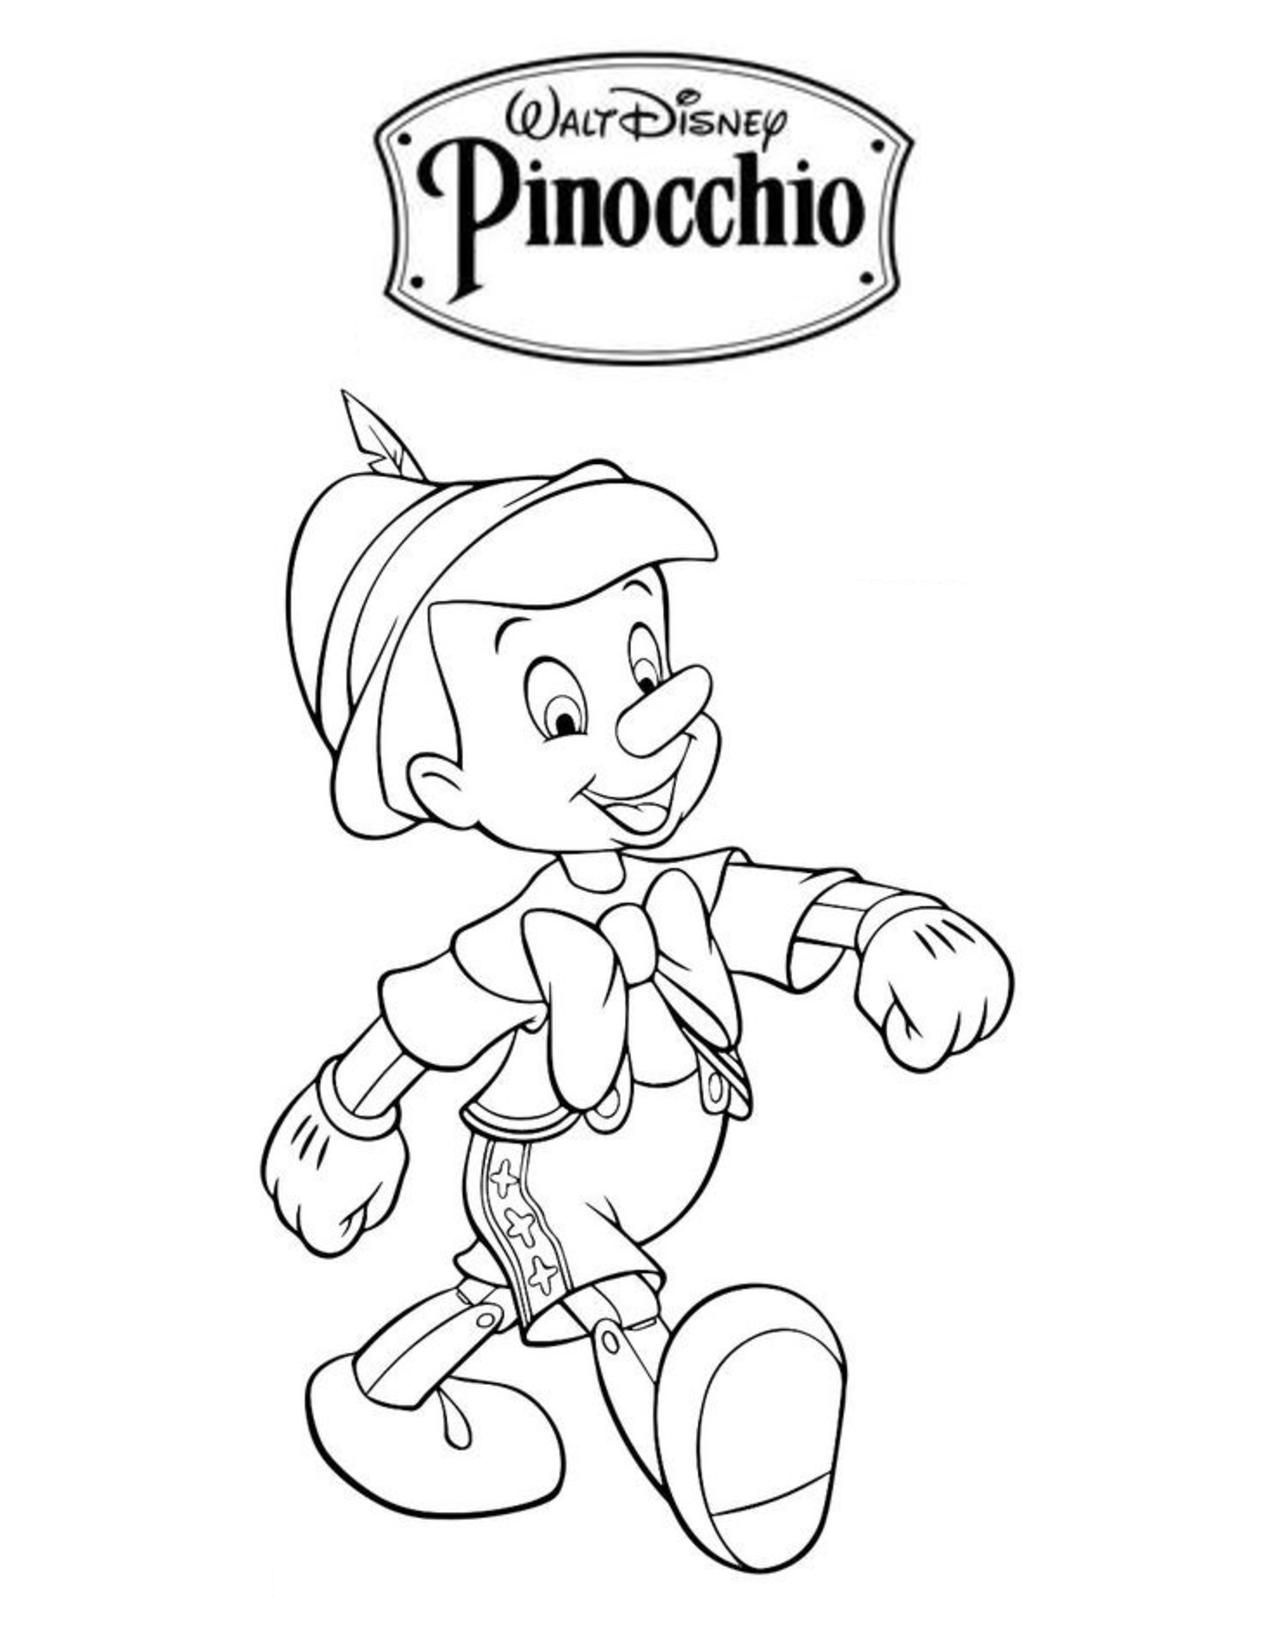 Pinocchio Disney coloring pages, Coloring books